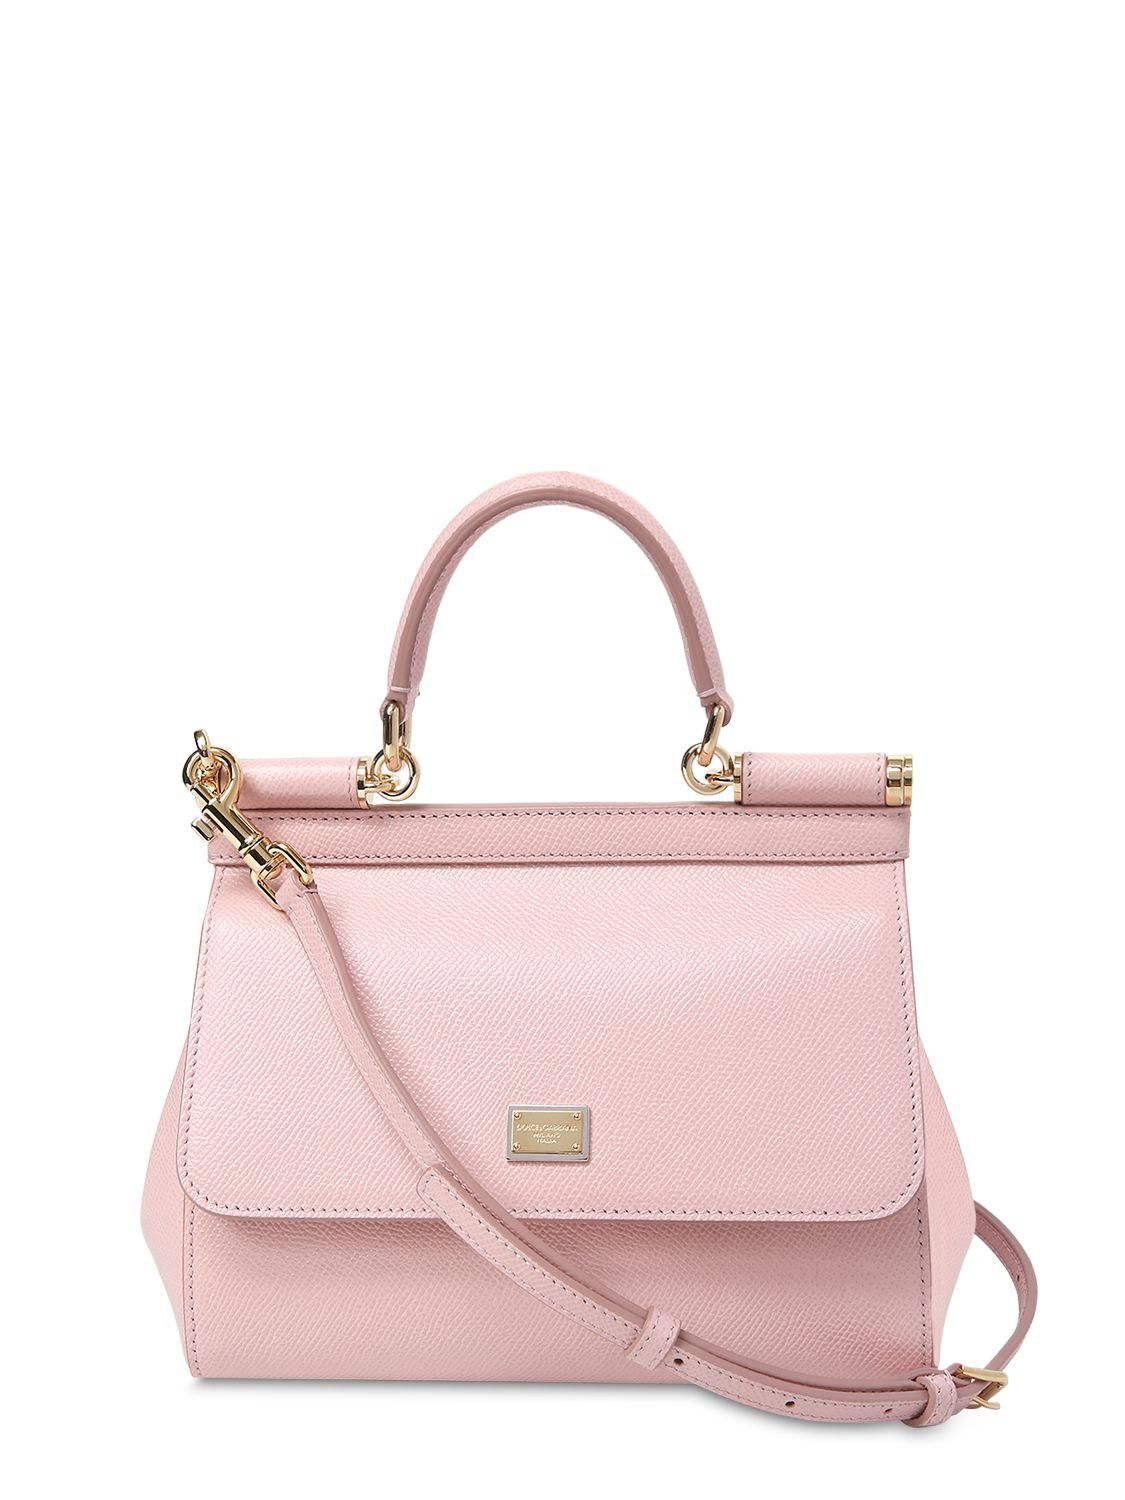 ba6664d966c Lyst - Dolce   Gabbana Small Sicily Dauphine Leather Bag in Pink